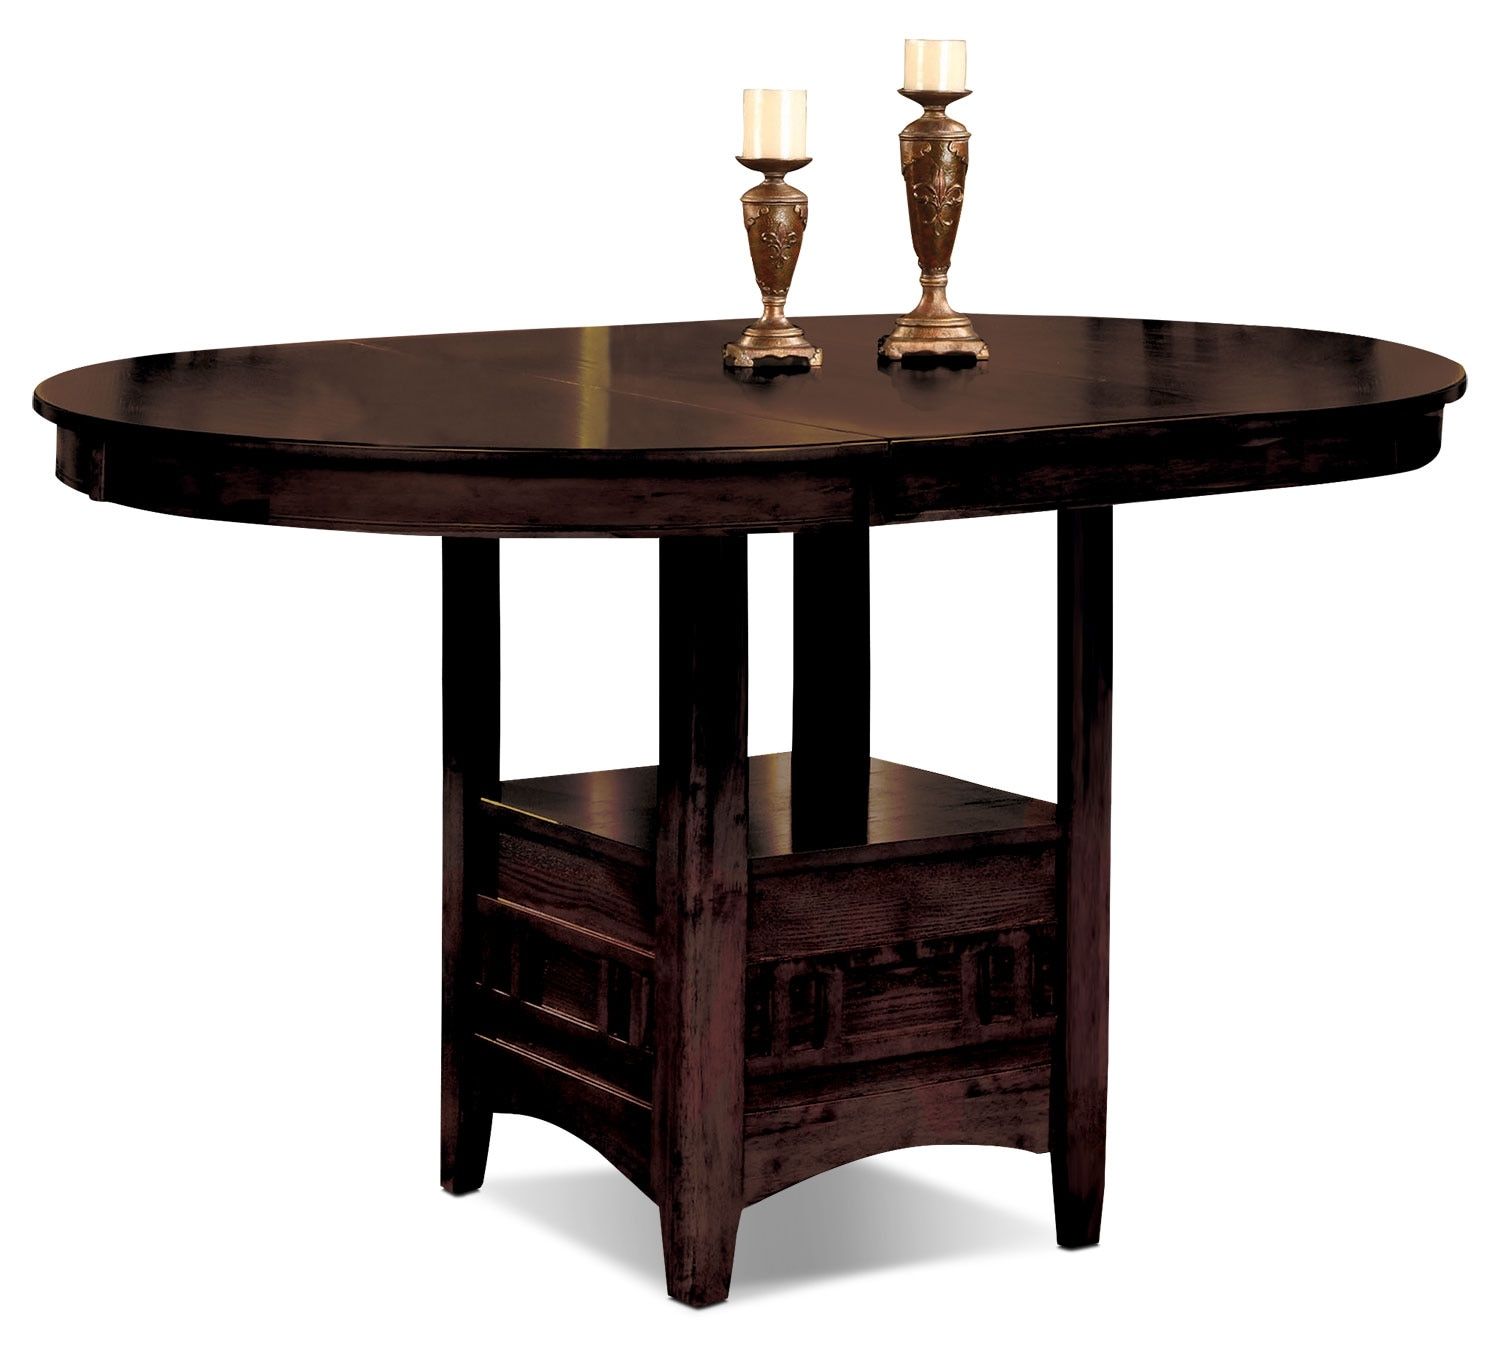 Dining Room Furniture - Dalton Chocolate Counter-Height Table